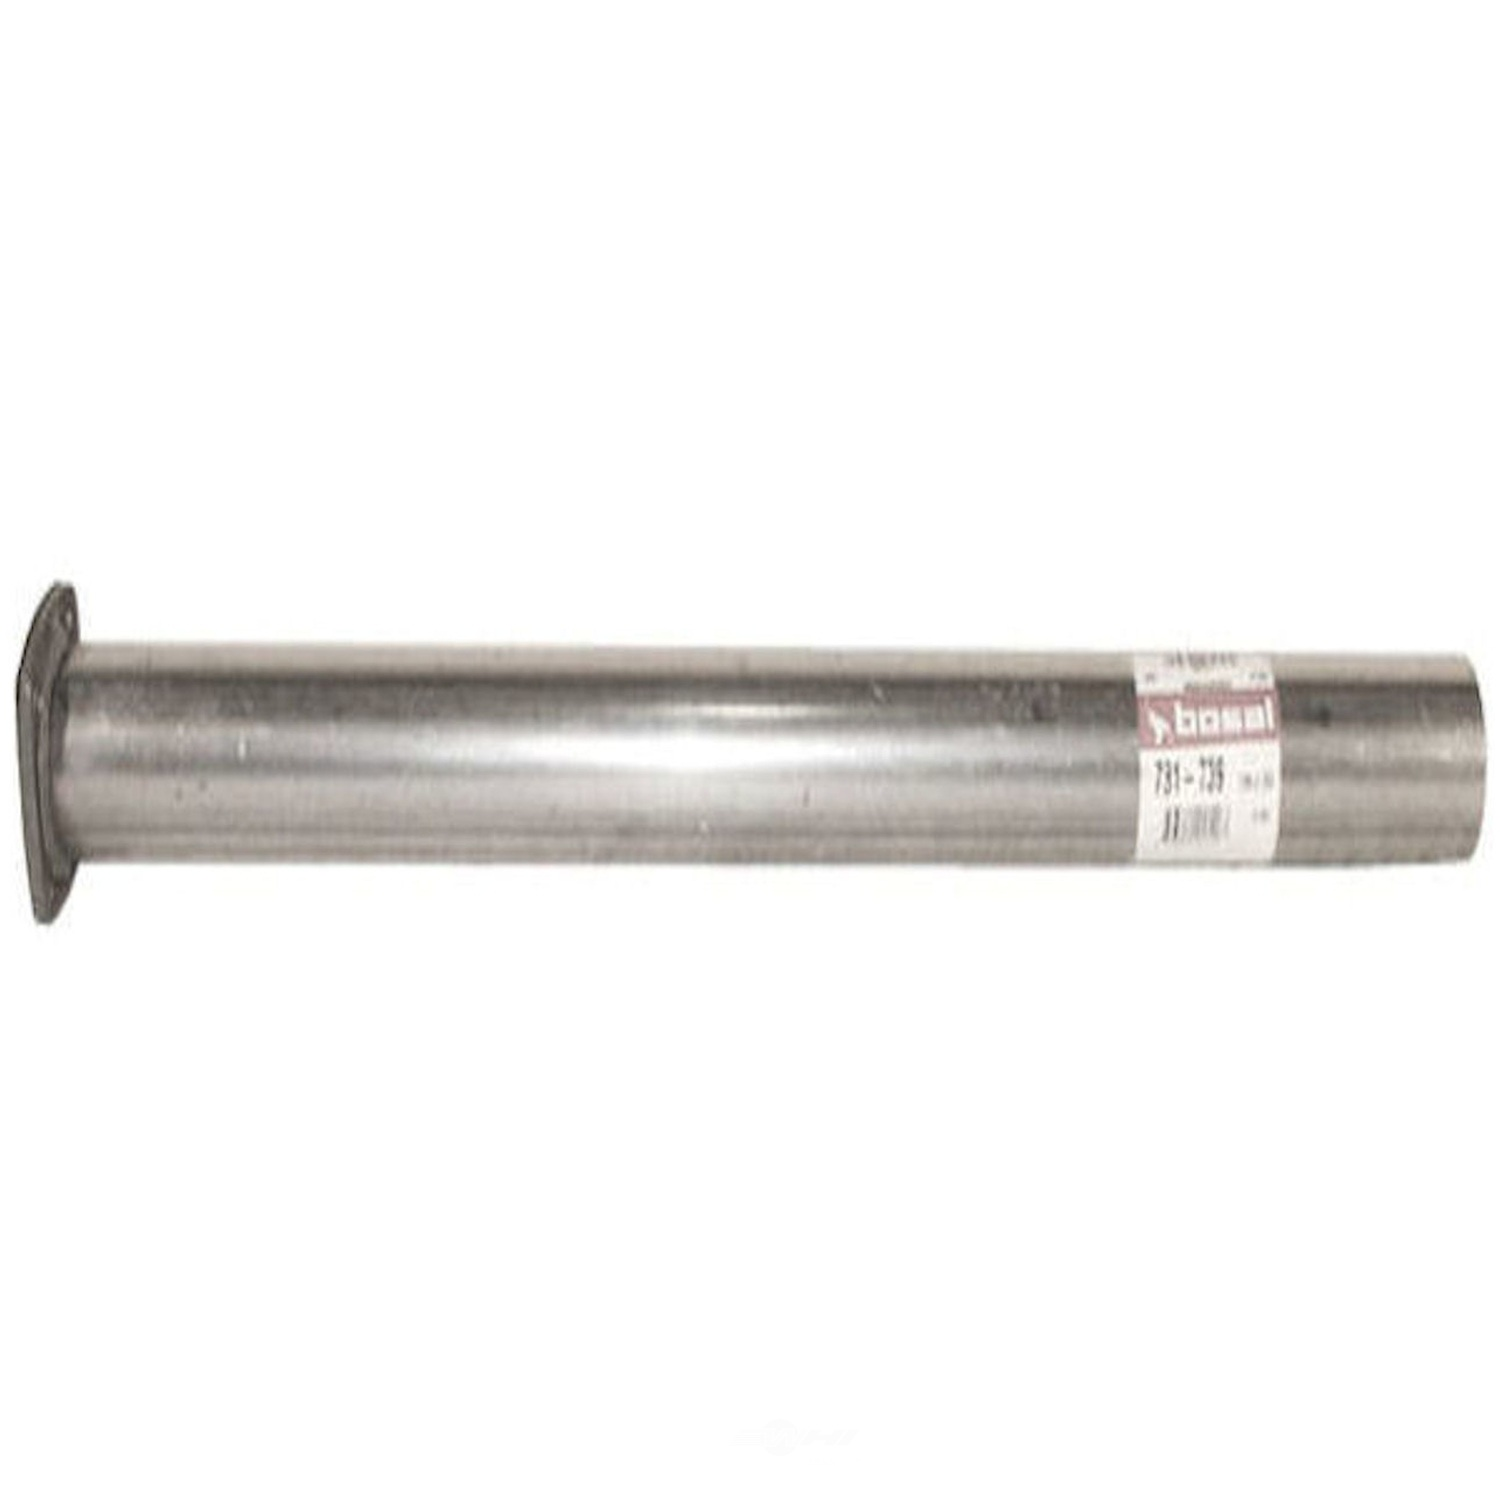 BOSAL 49 STATE CONVERTERS - Exhaust Pipe - BSF 731-739